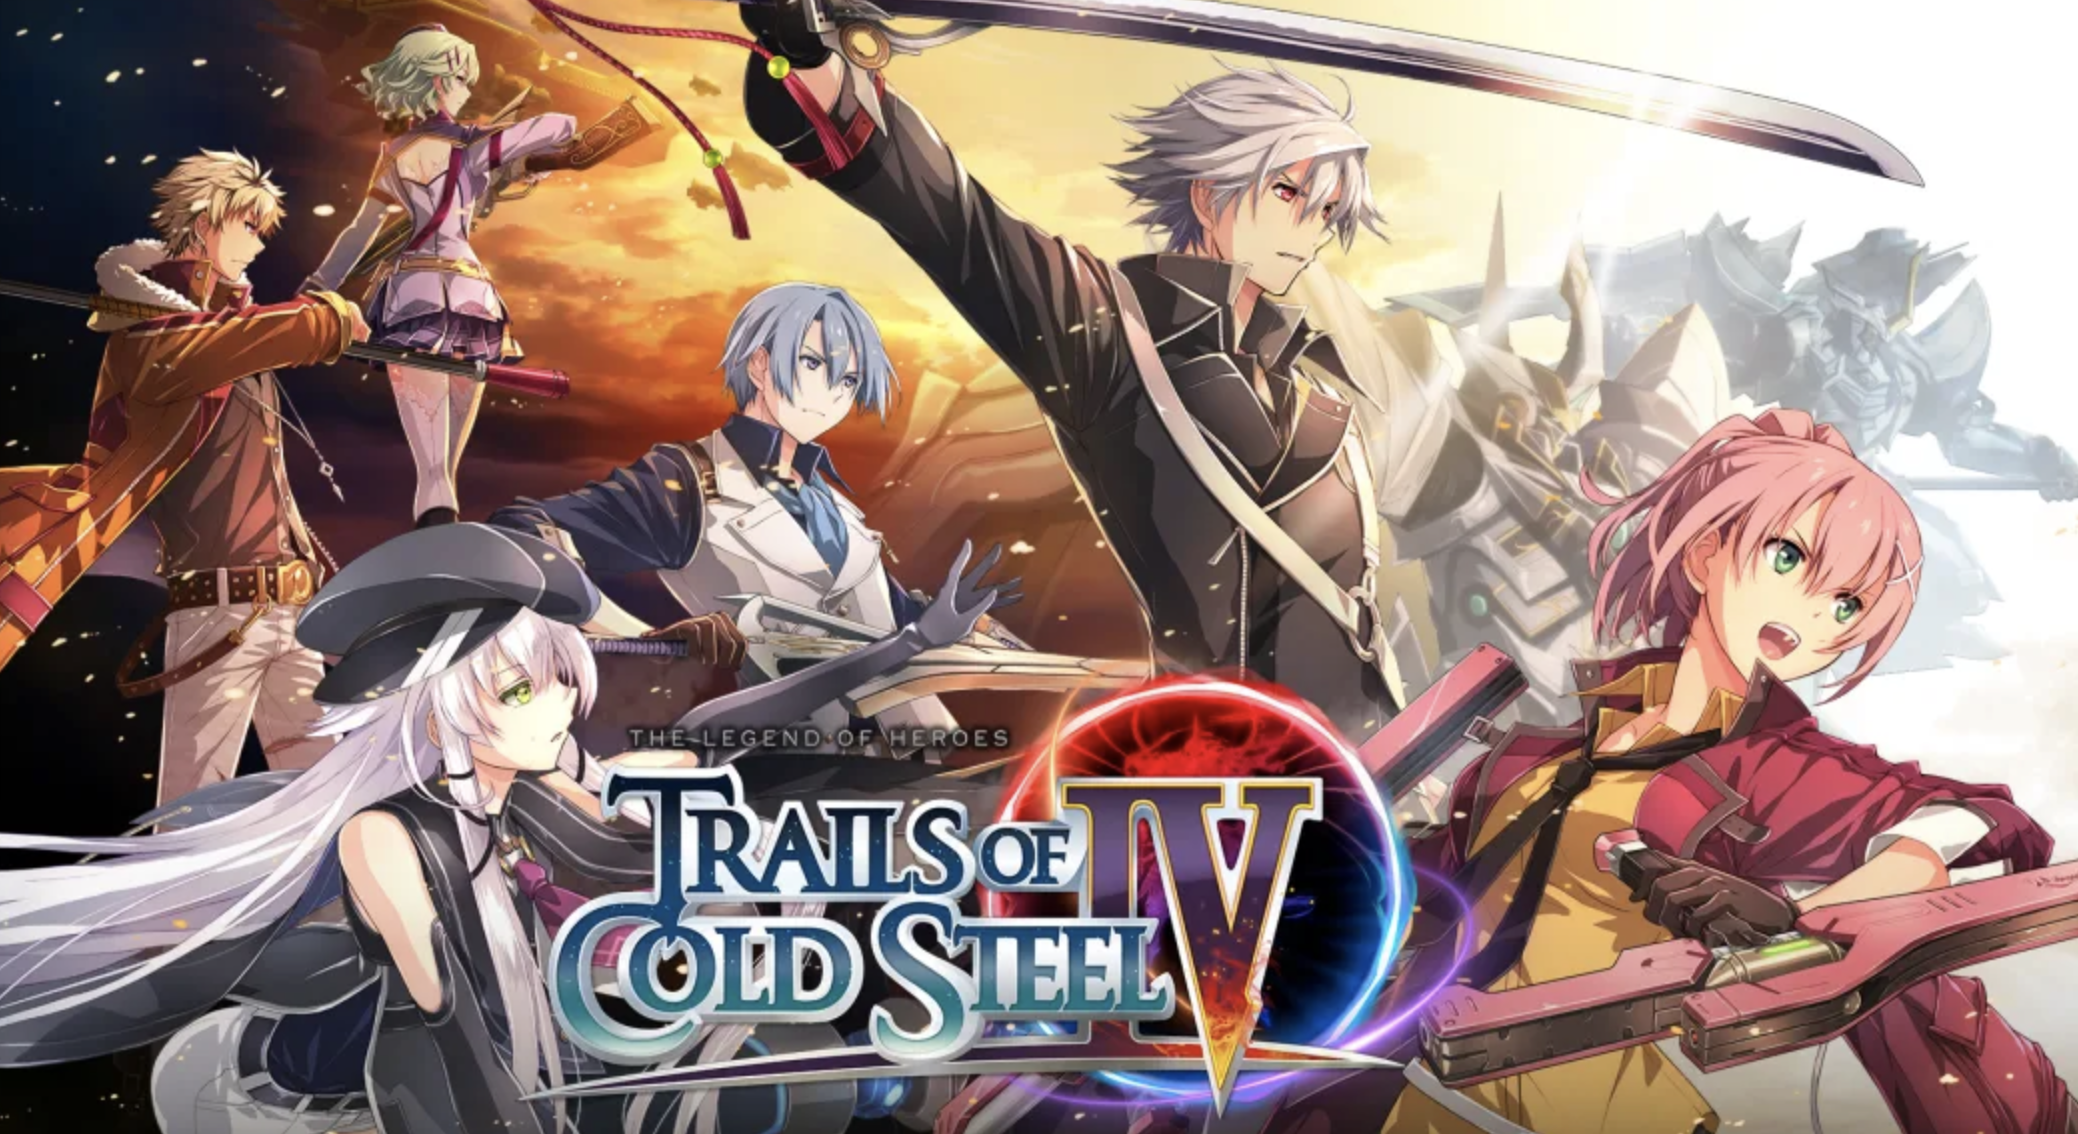 Trails of Cold Steel IV review